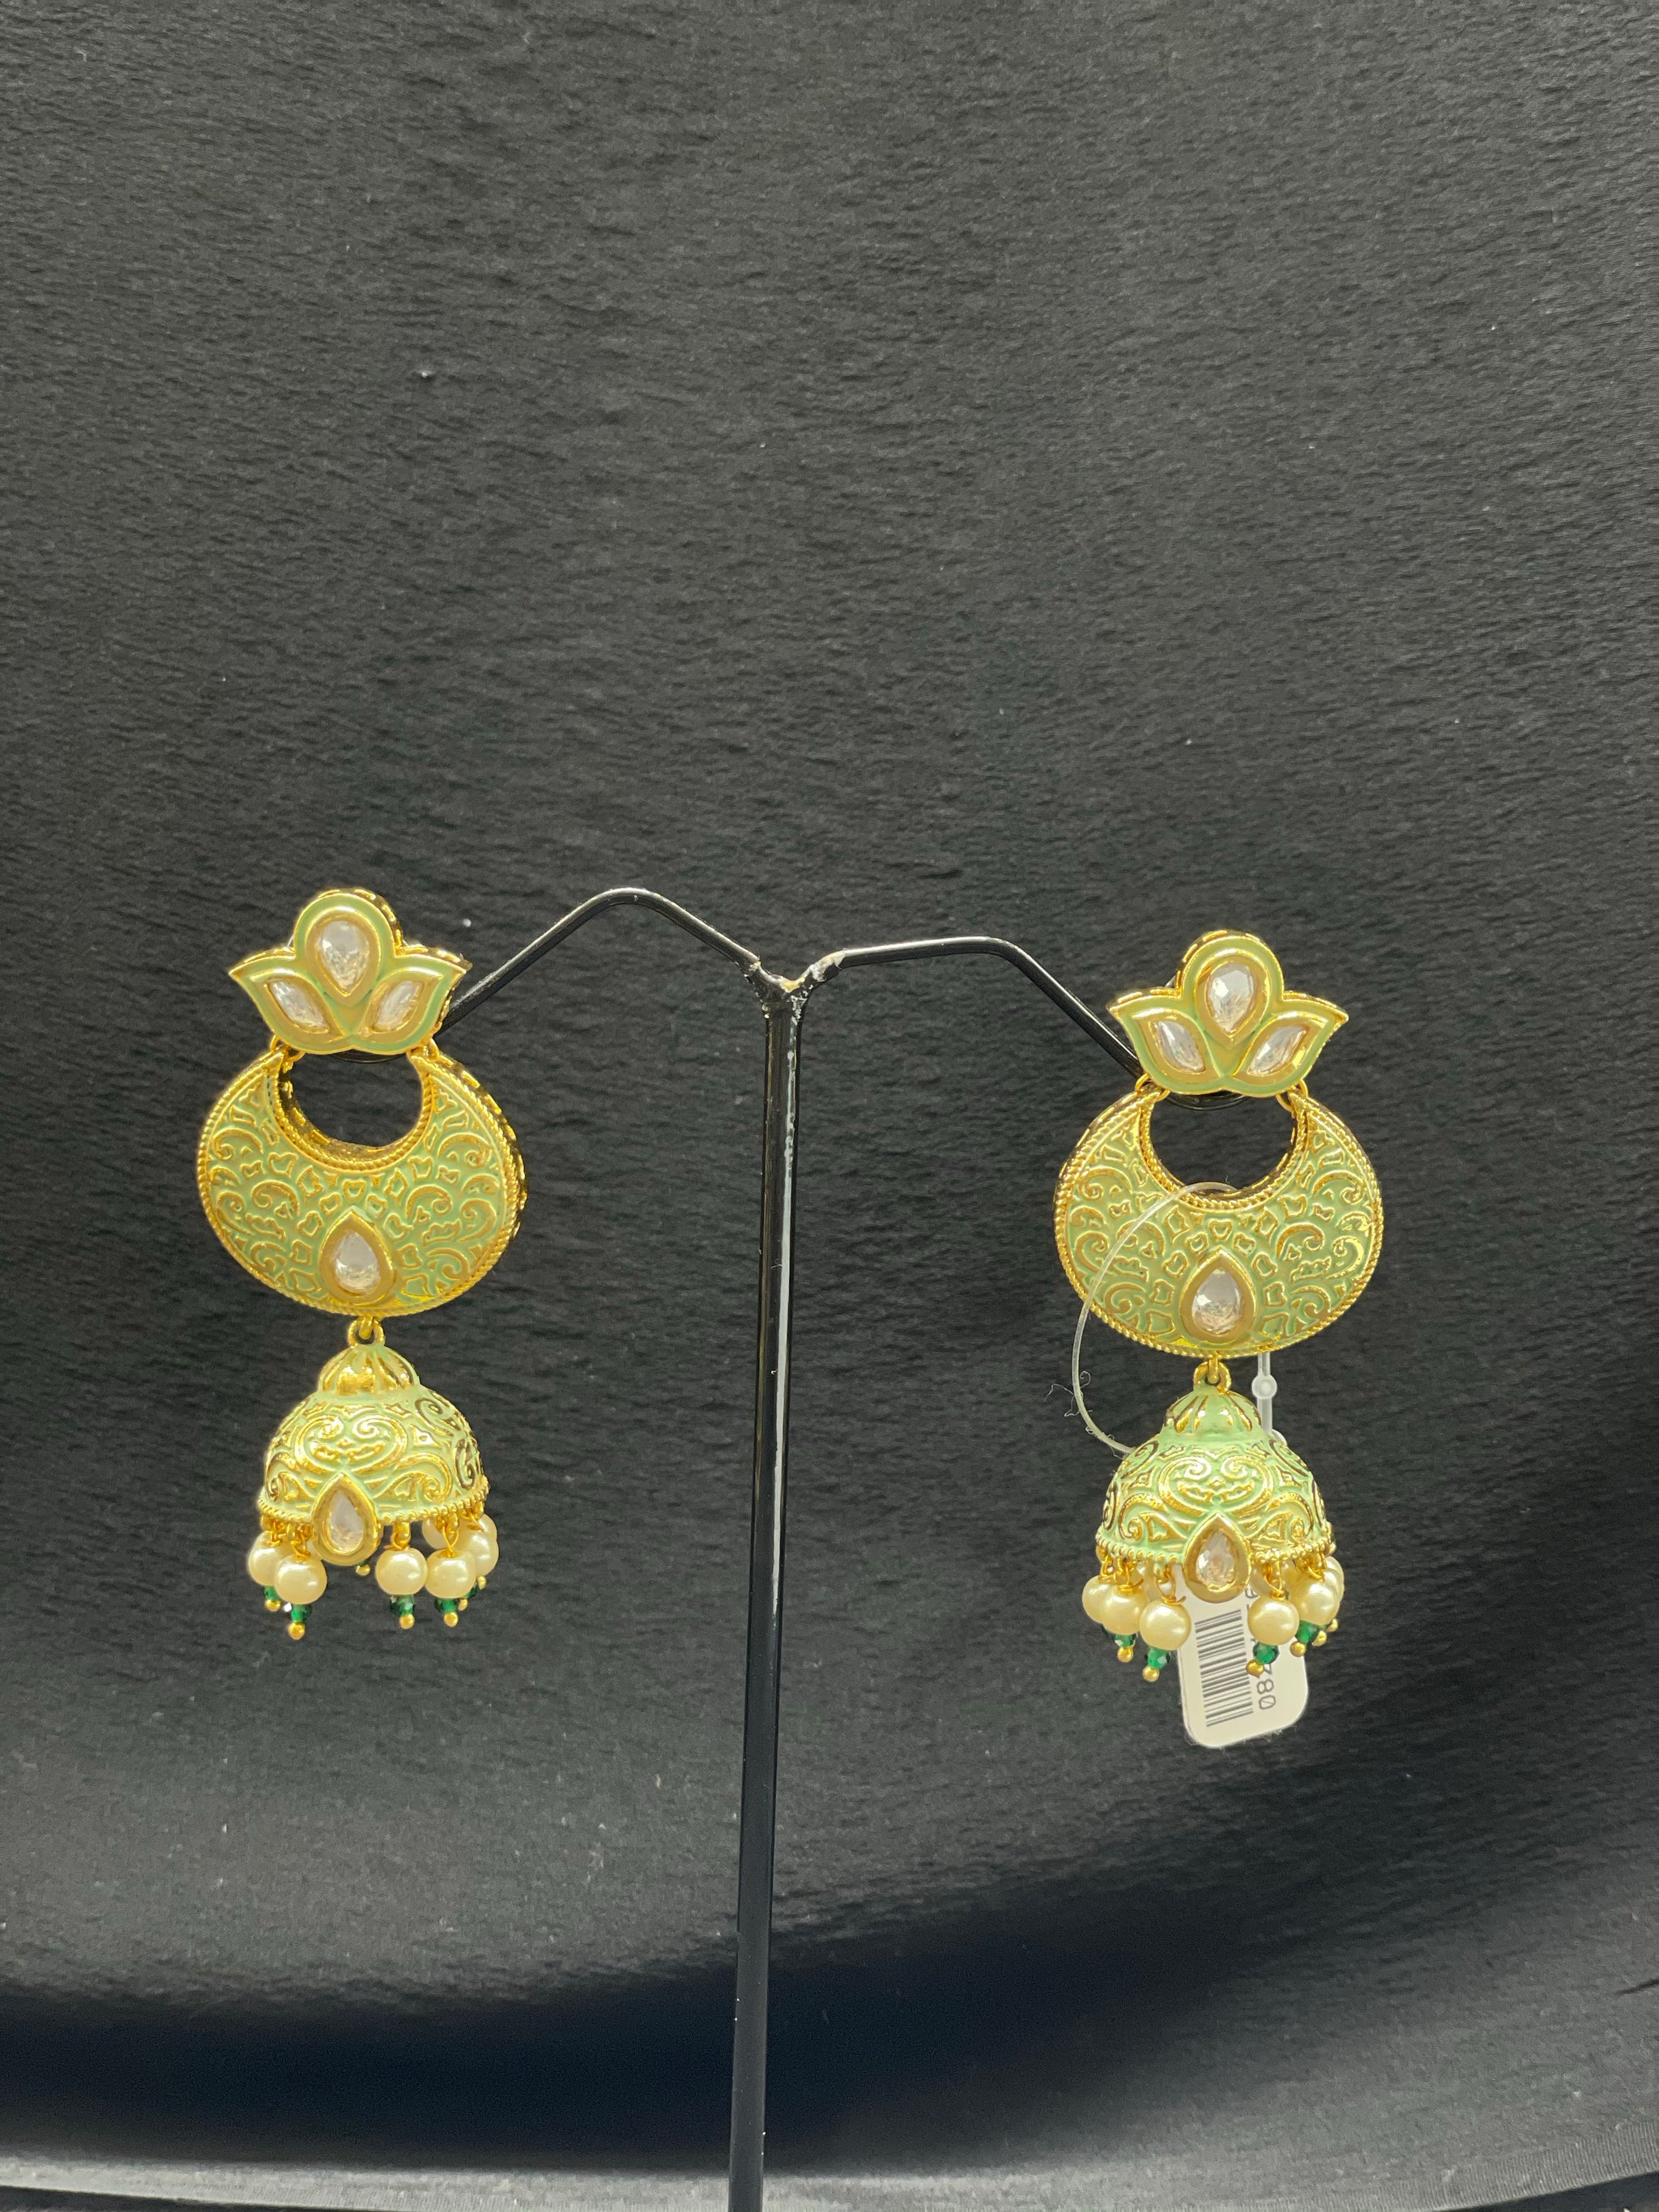 Traditional Meenakari Chand Bali Earrings w/ Kundan & Pearls Accents